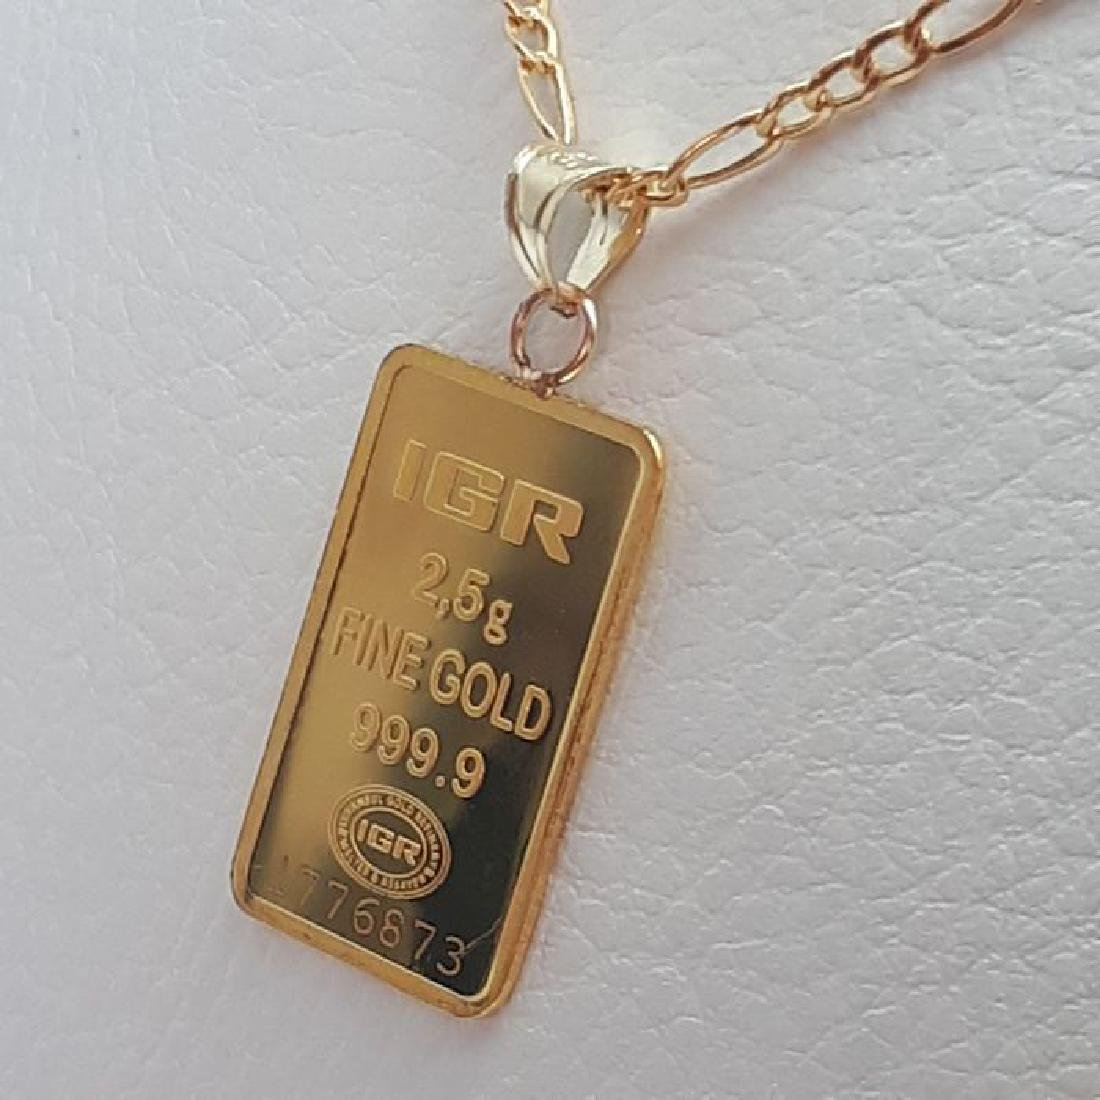 14 ct Yellow Gold Chain & 2.5g Bullion Gold Pendant - 5